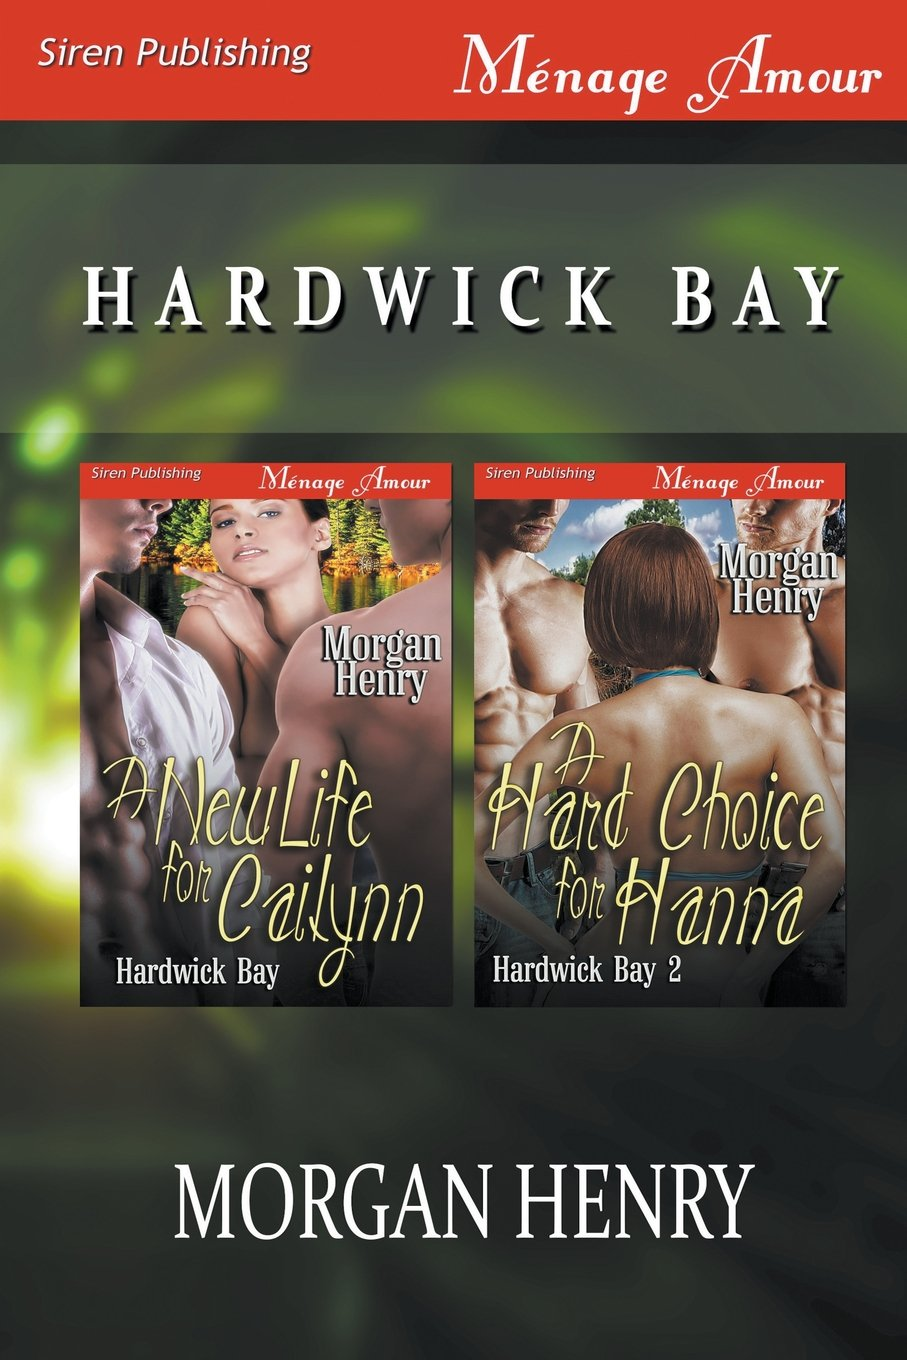 Download Hardwick Bay [A New Life for Cailynn: A Hard Choice for Hanna] (Siren Publishing Menage Amour) ebook